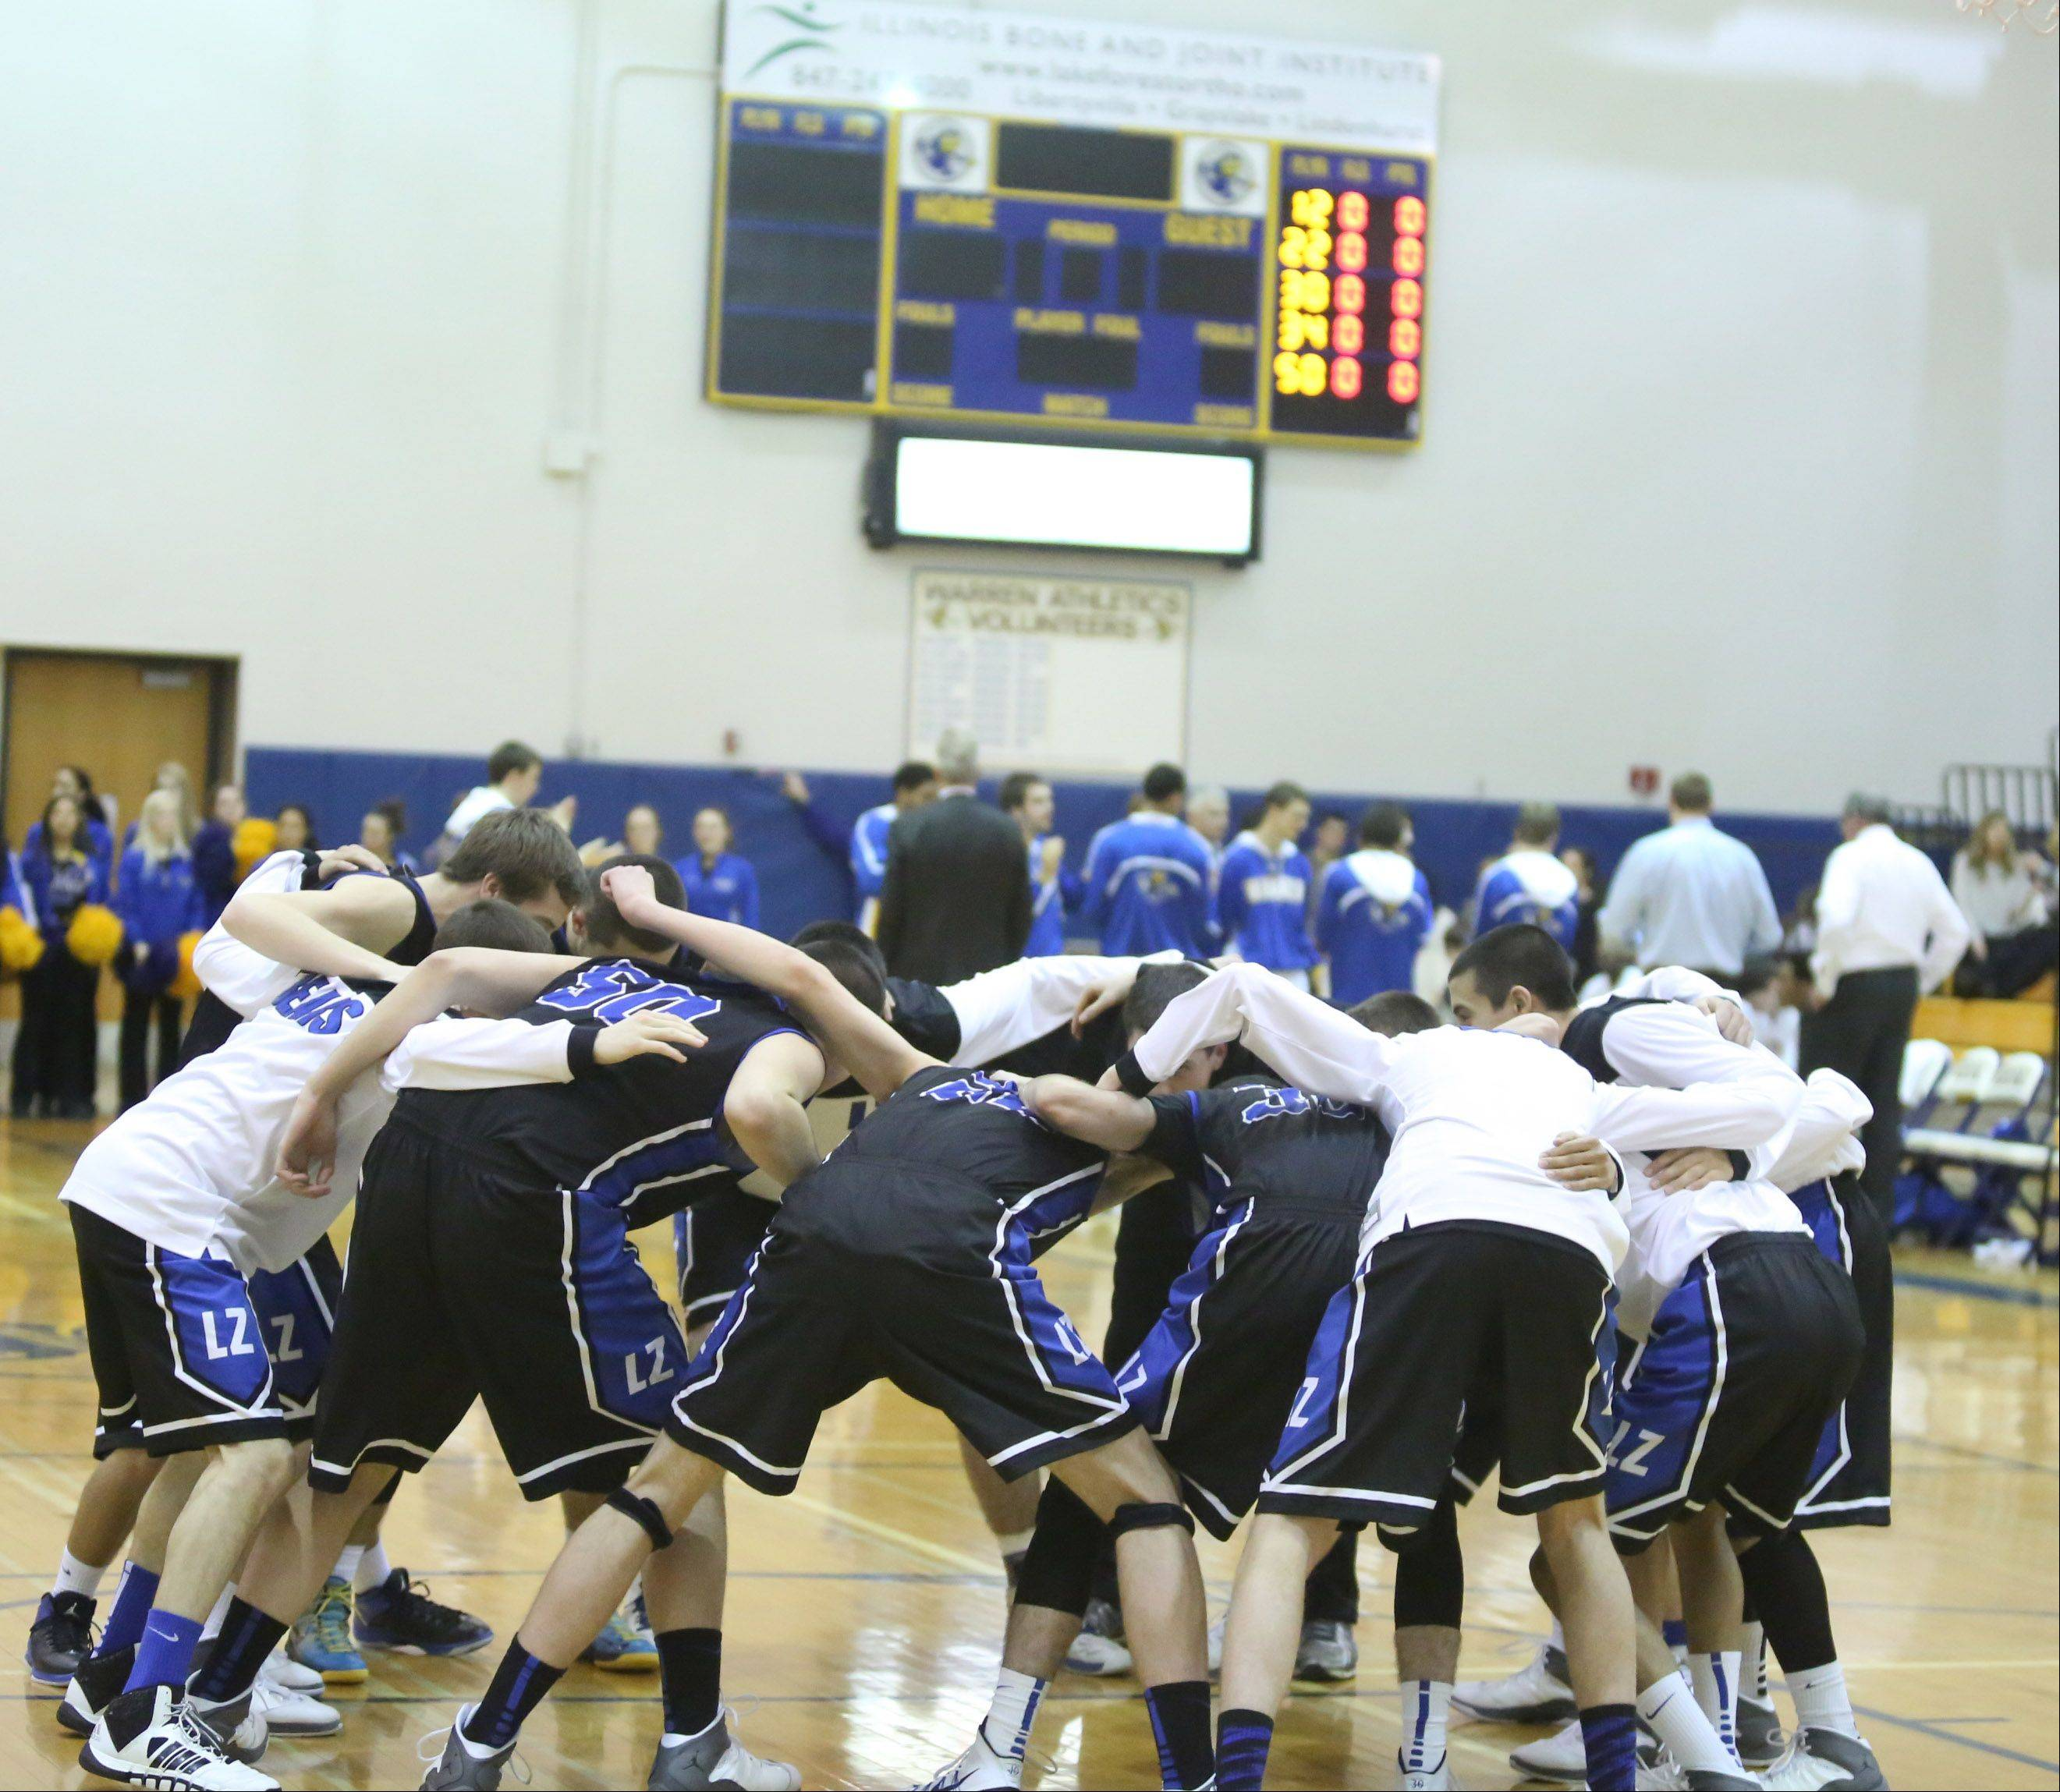 Images from the Lake Zurich at Warren boys basketball game on Friday, January 10 in Gurnee.